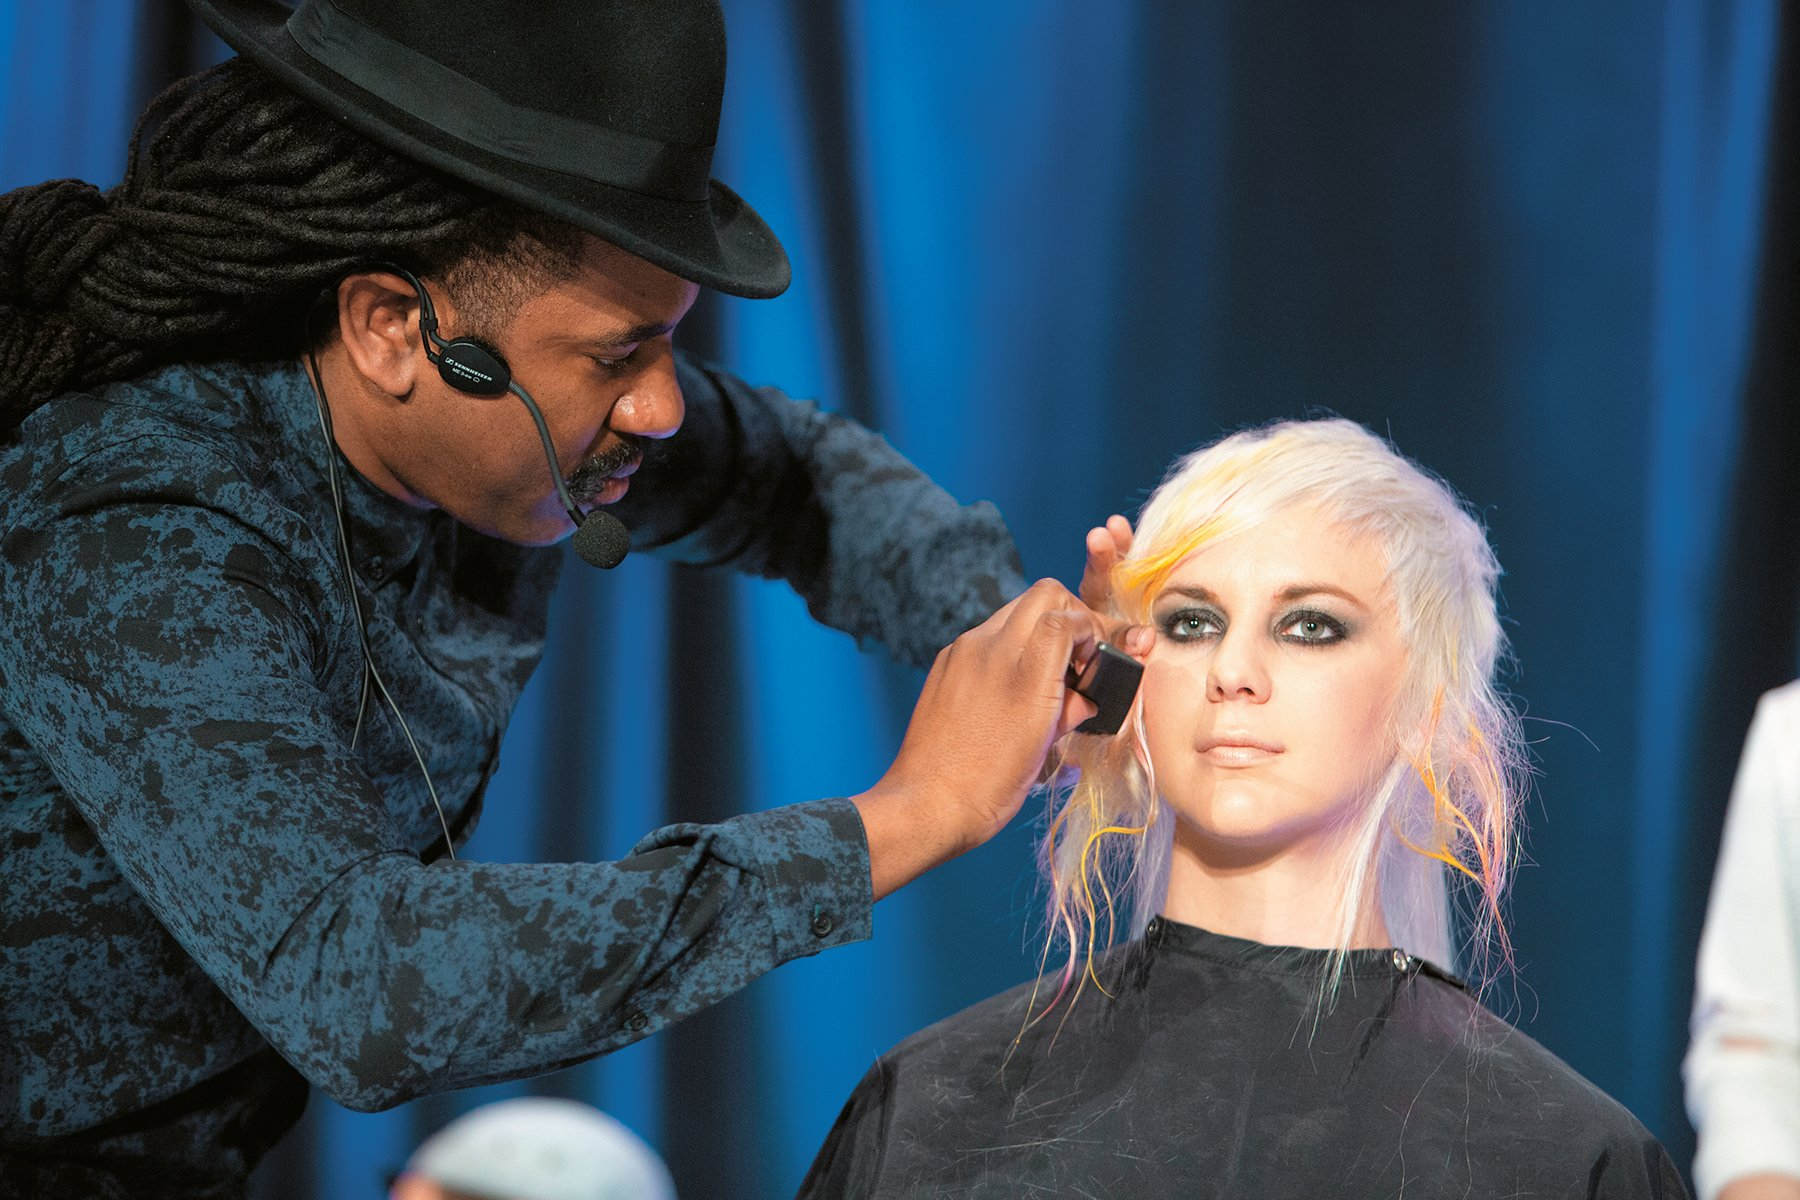 DJ Riggs cutting hair on the Hairbrained Teach In Stage.